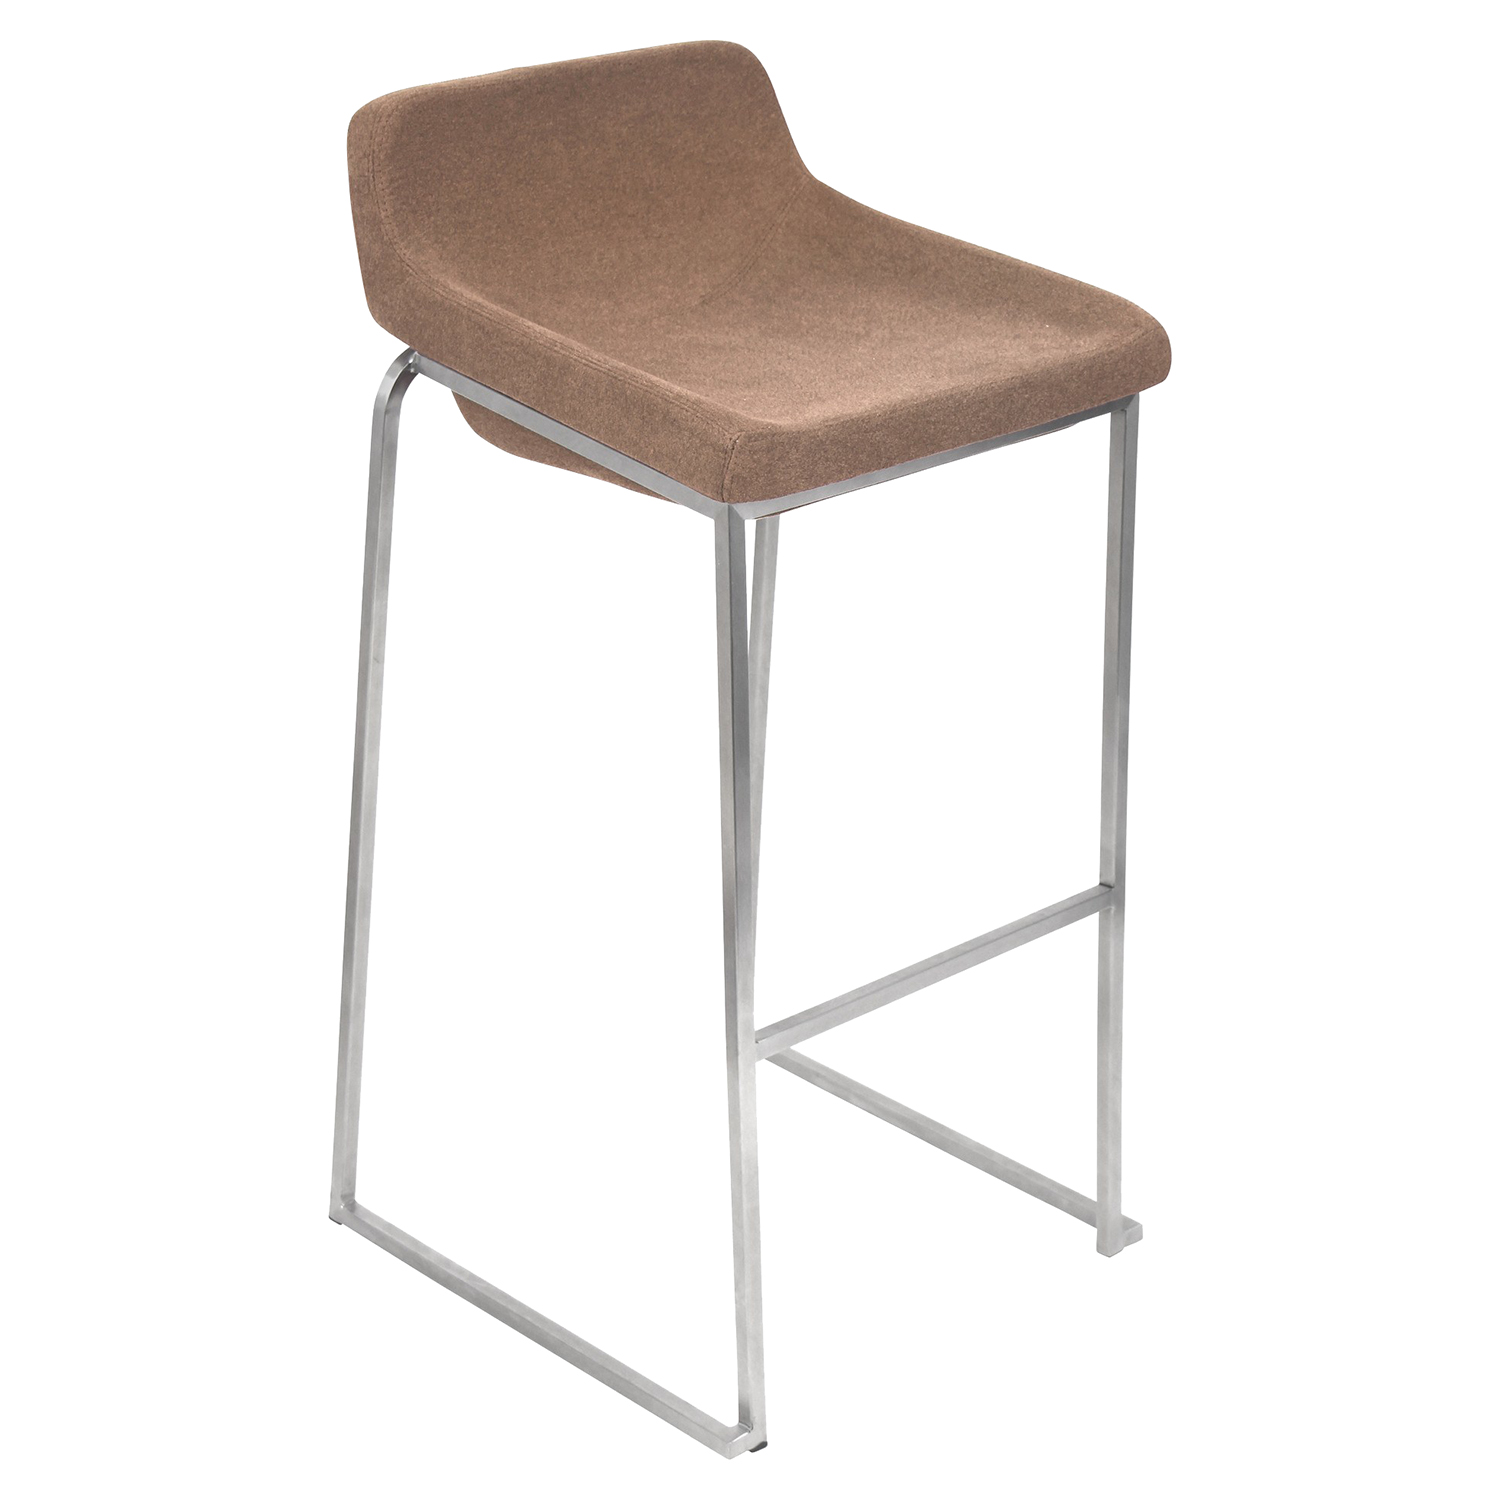 Drop-In Stackable Barstool - Light Brown (Set of 2) - LMS-BS-DROPIN-BN2